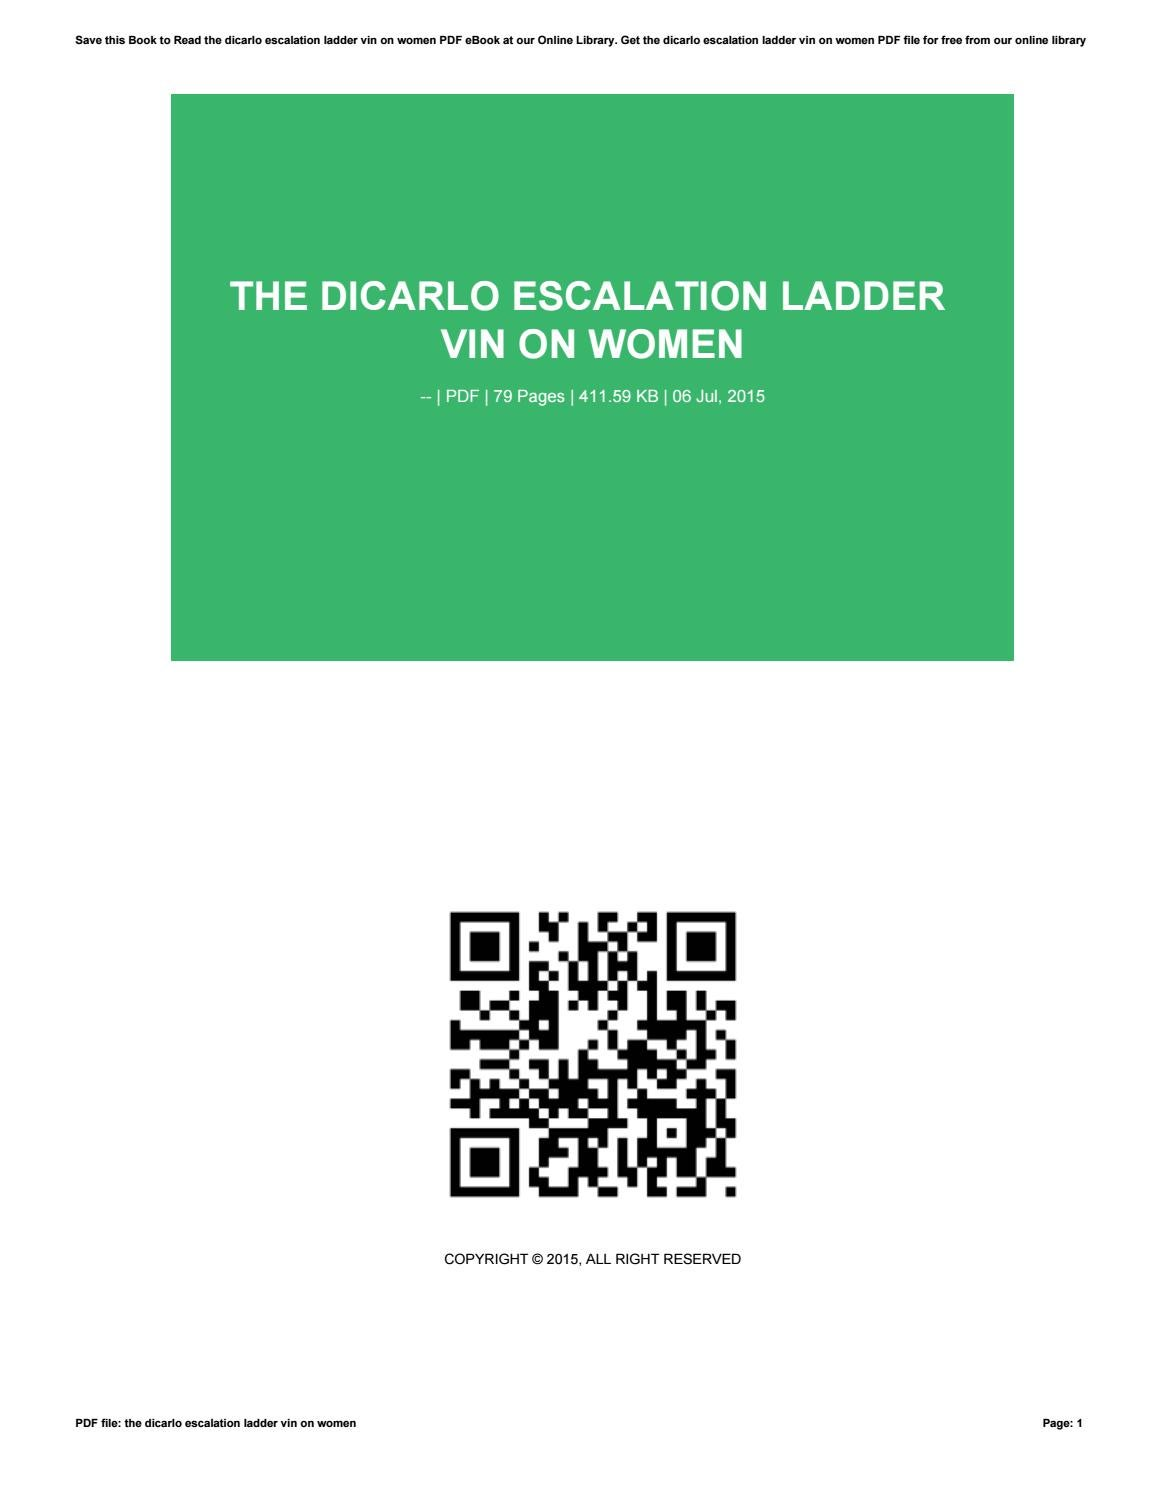 The dicarlo escalation ladder vin on women by